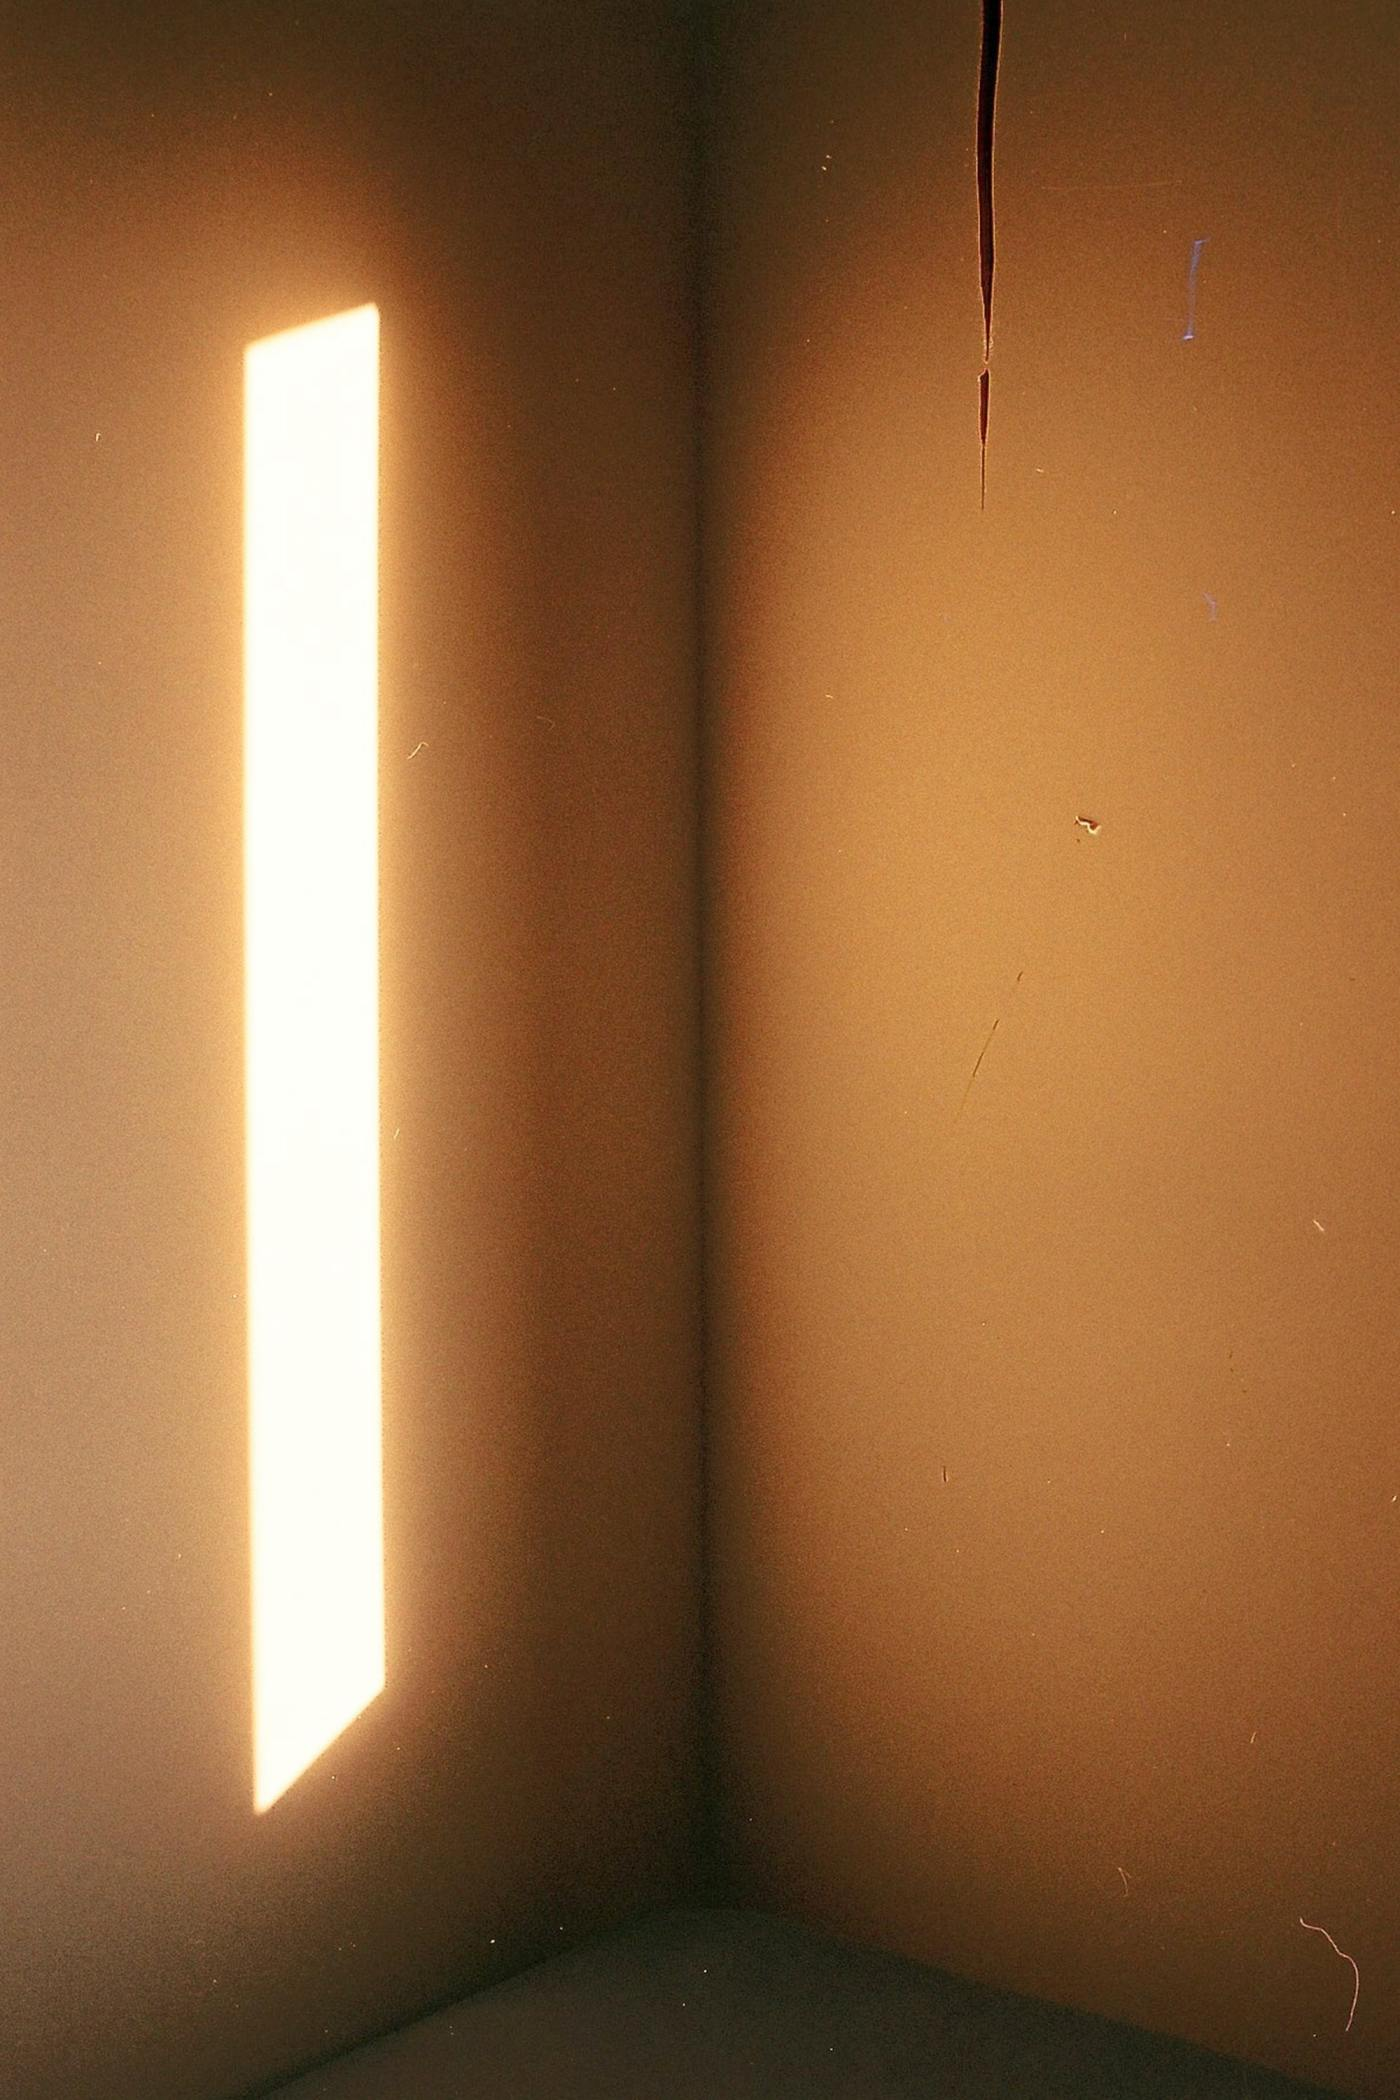 Interior, wall, shadow